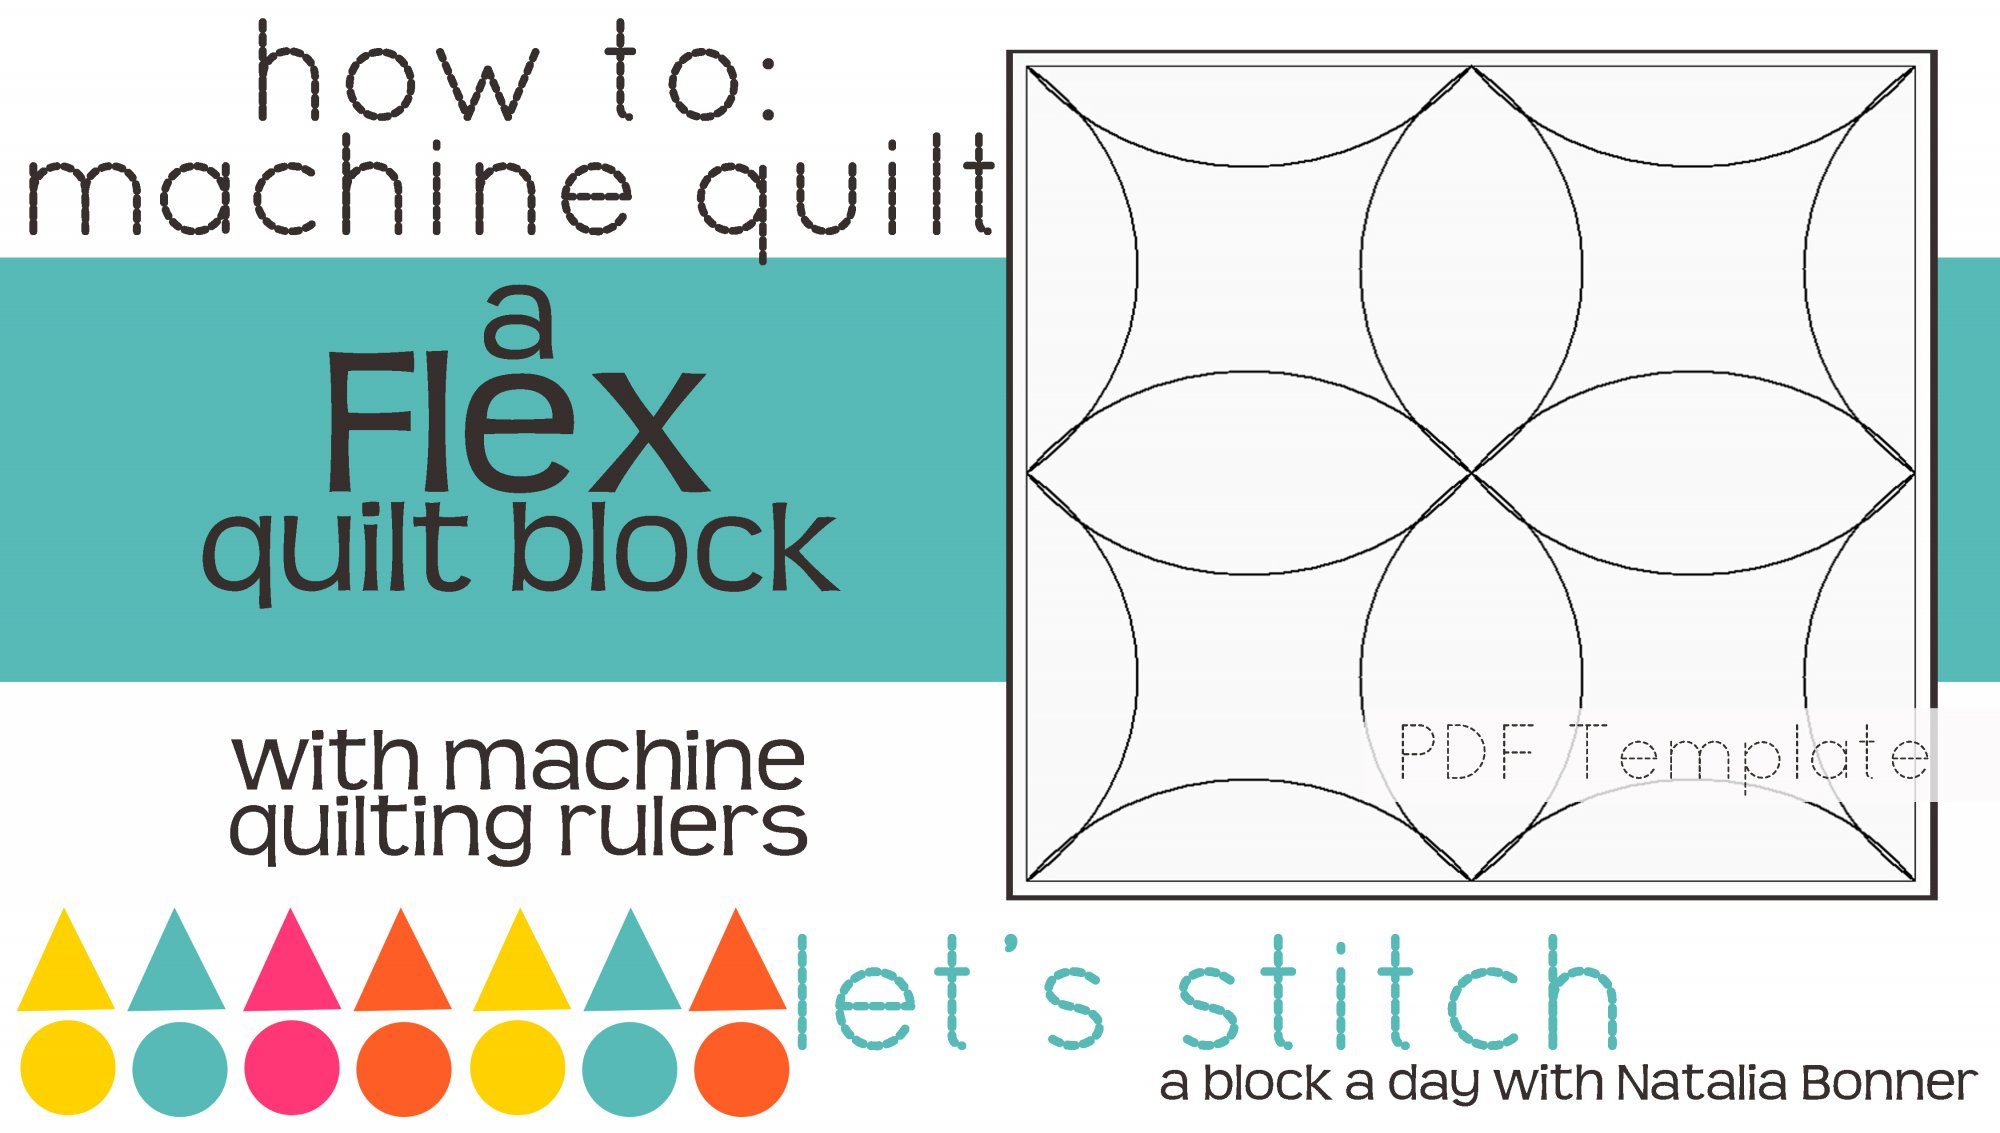 Let's Stitch - A Block a Day With Natalia Bonner - PDF - Flex